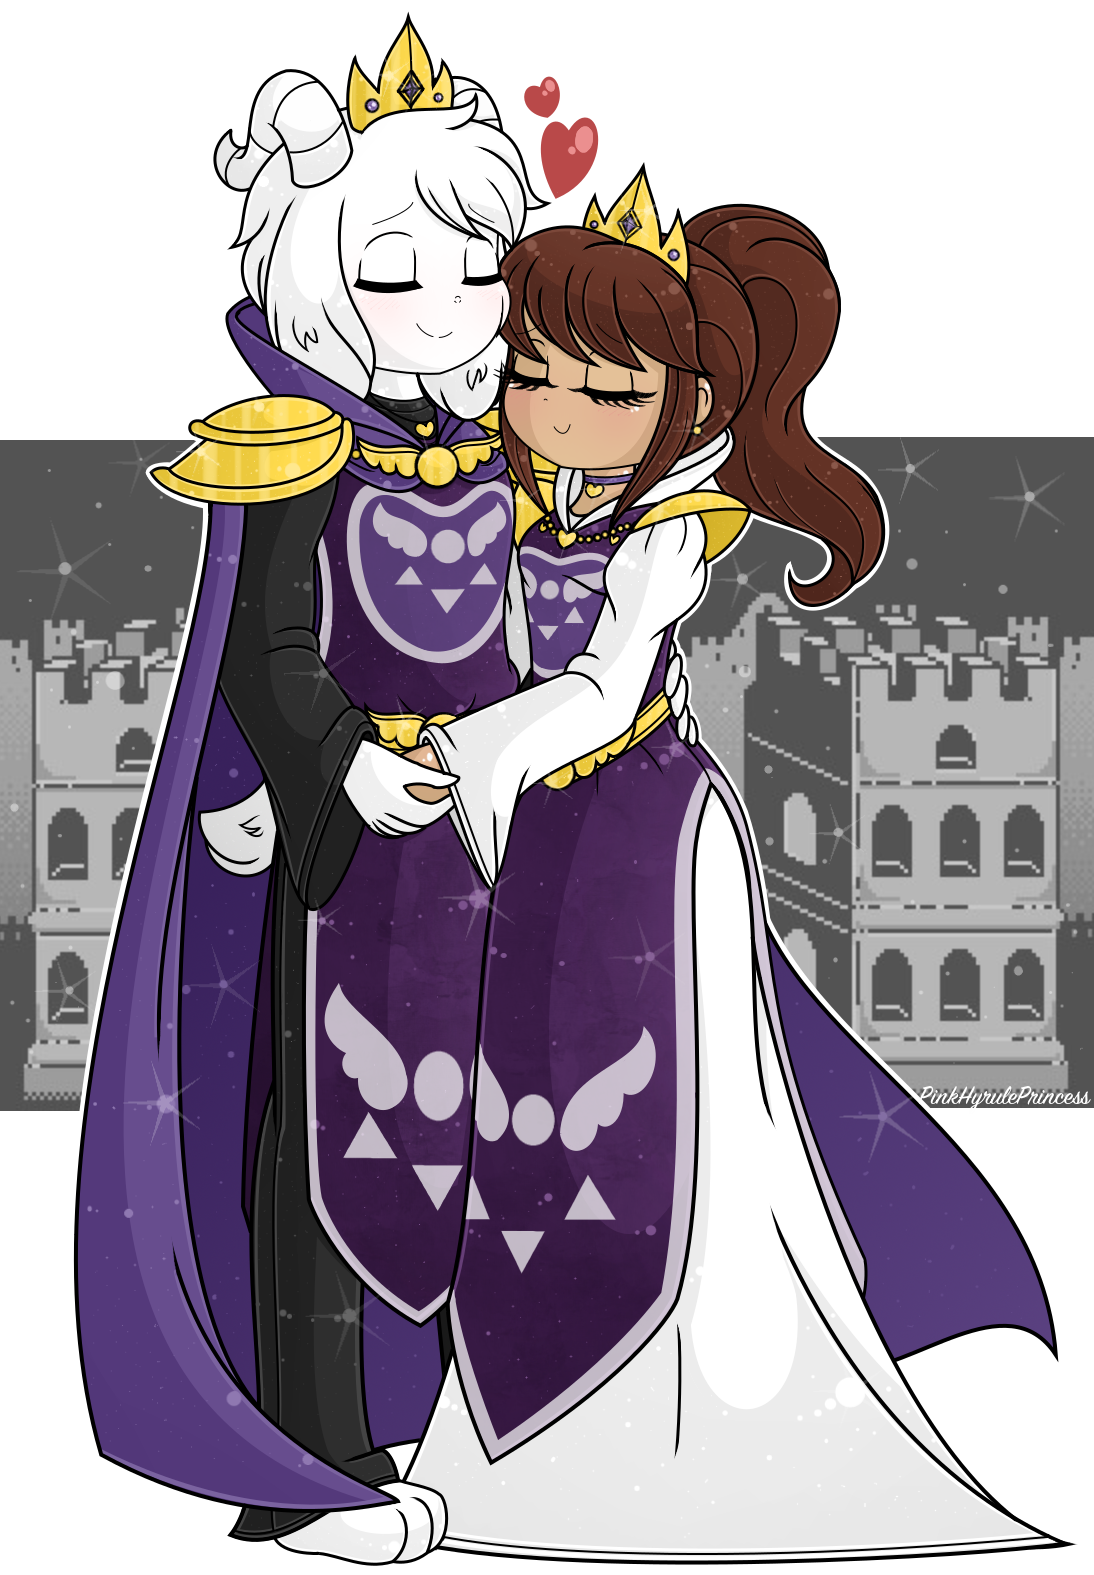 King And Queen Rulers Of The Monsters In 2020 Undertale Cute Anime Undertale Undertale Art